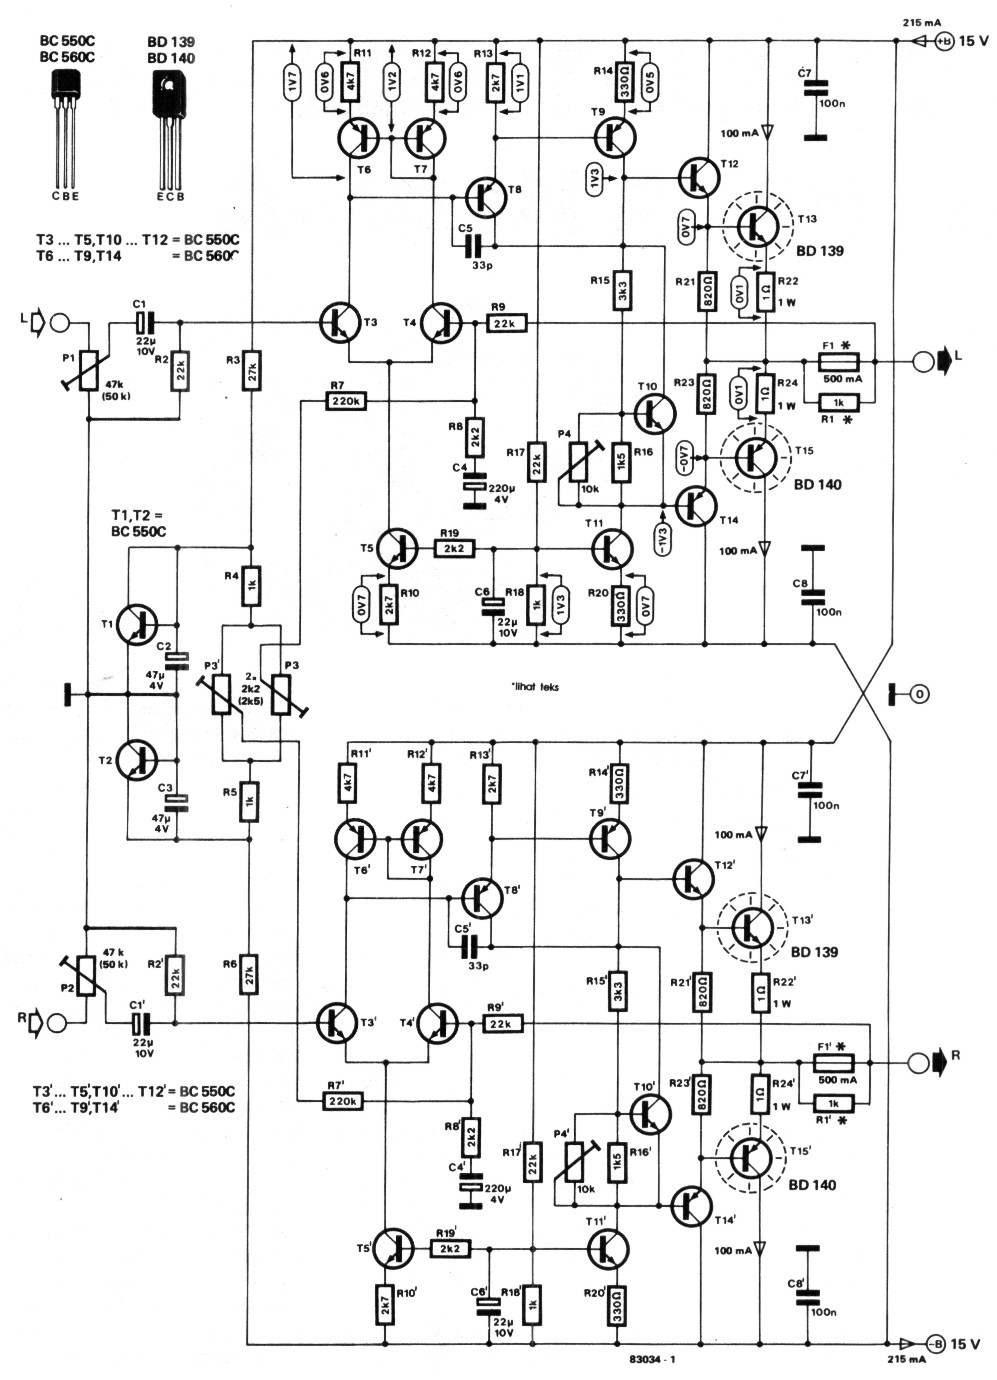 Tda1554q 2x22w Amplifier Circuit Tda1554 Stereo Bbb T Tube Otl Headphone Diagram Amplifiercircuit Schematic